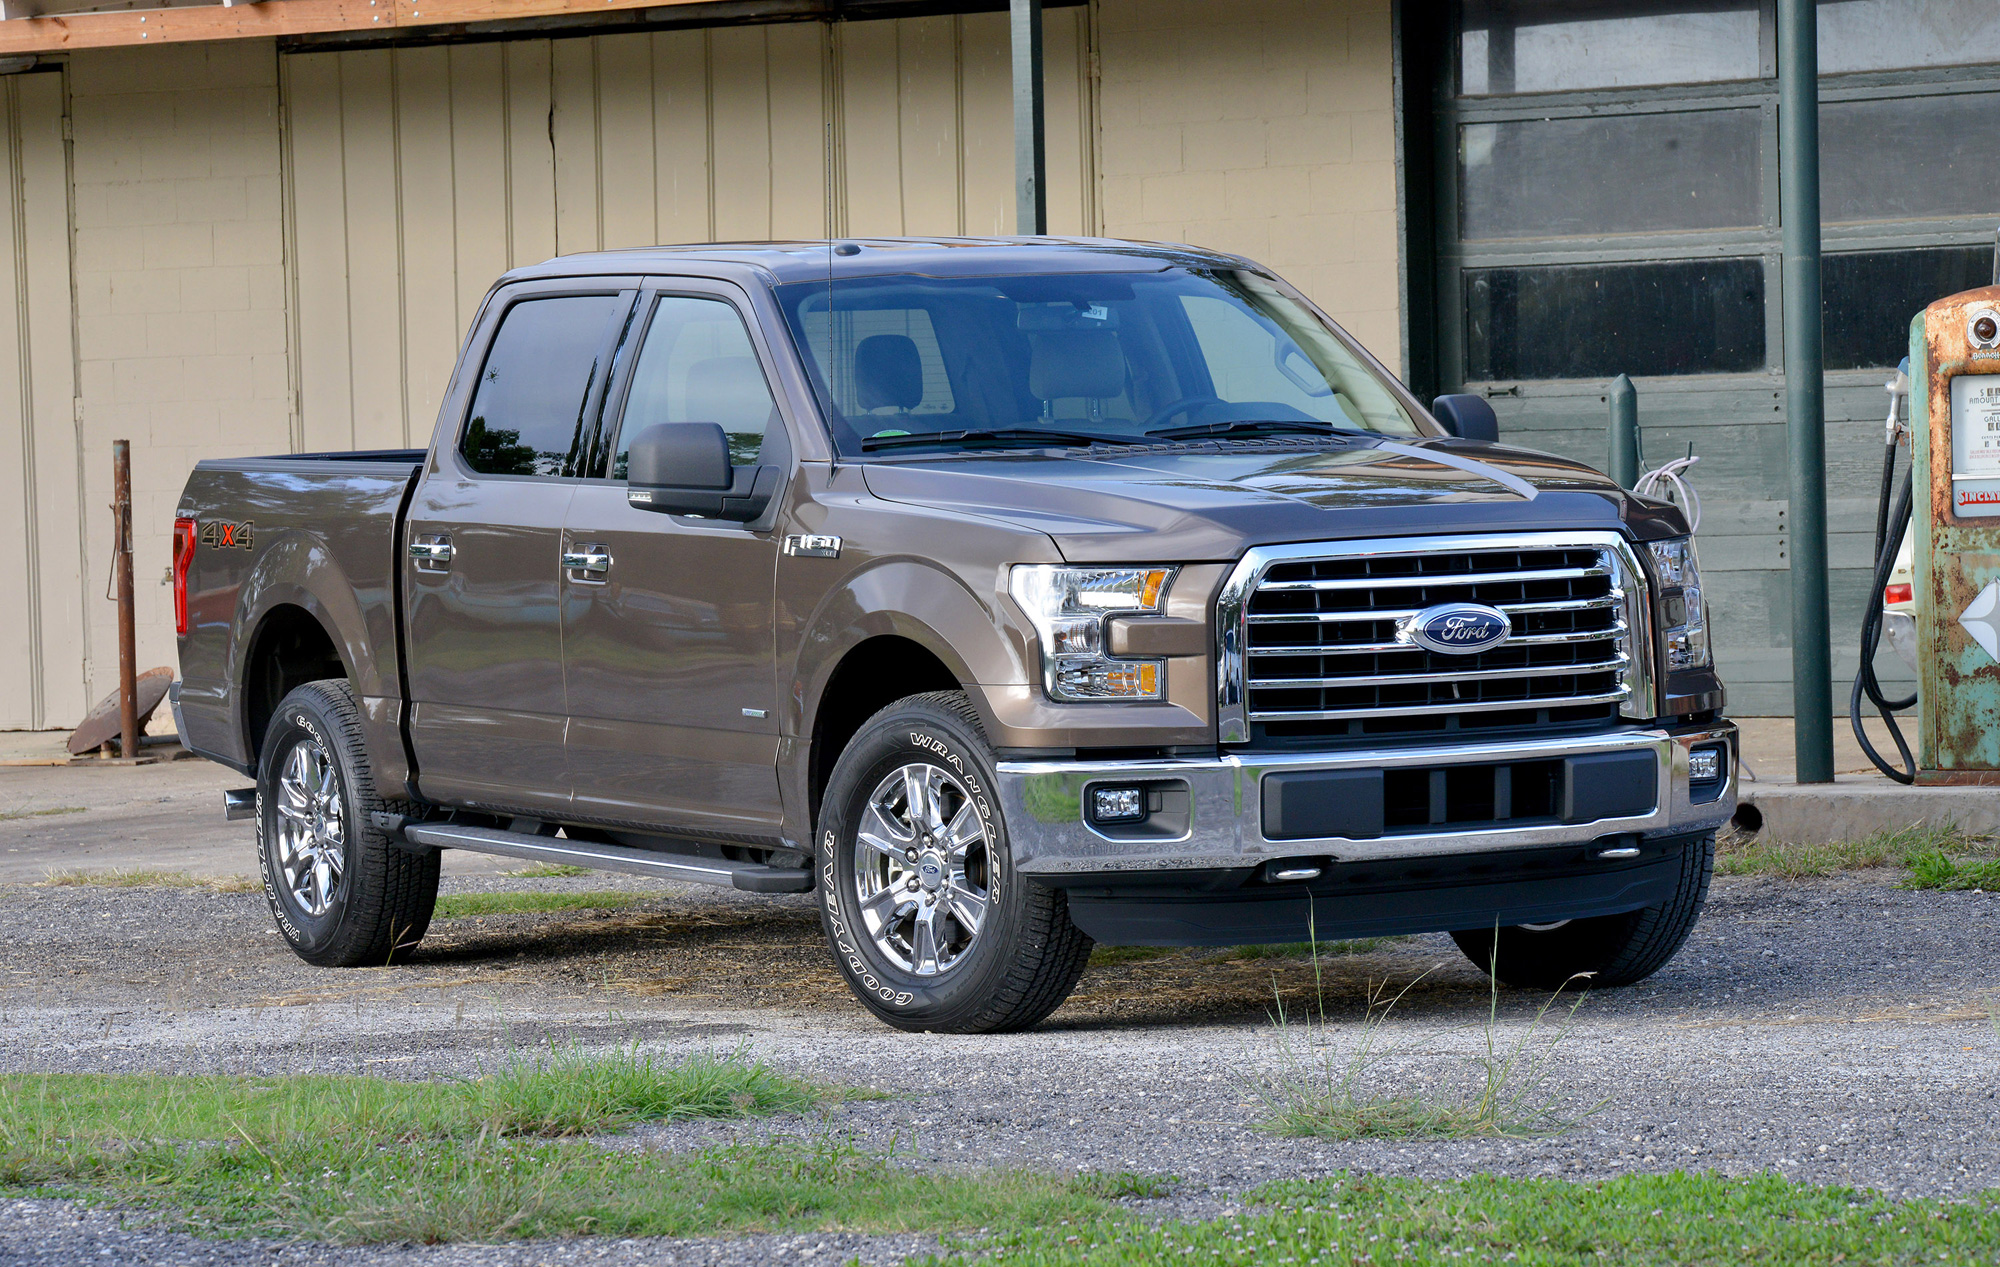 Ford Truck Incentives Ford F 150 Pickup Getting Discounted By 10k